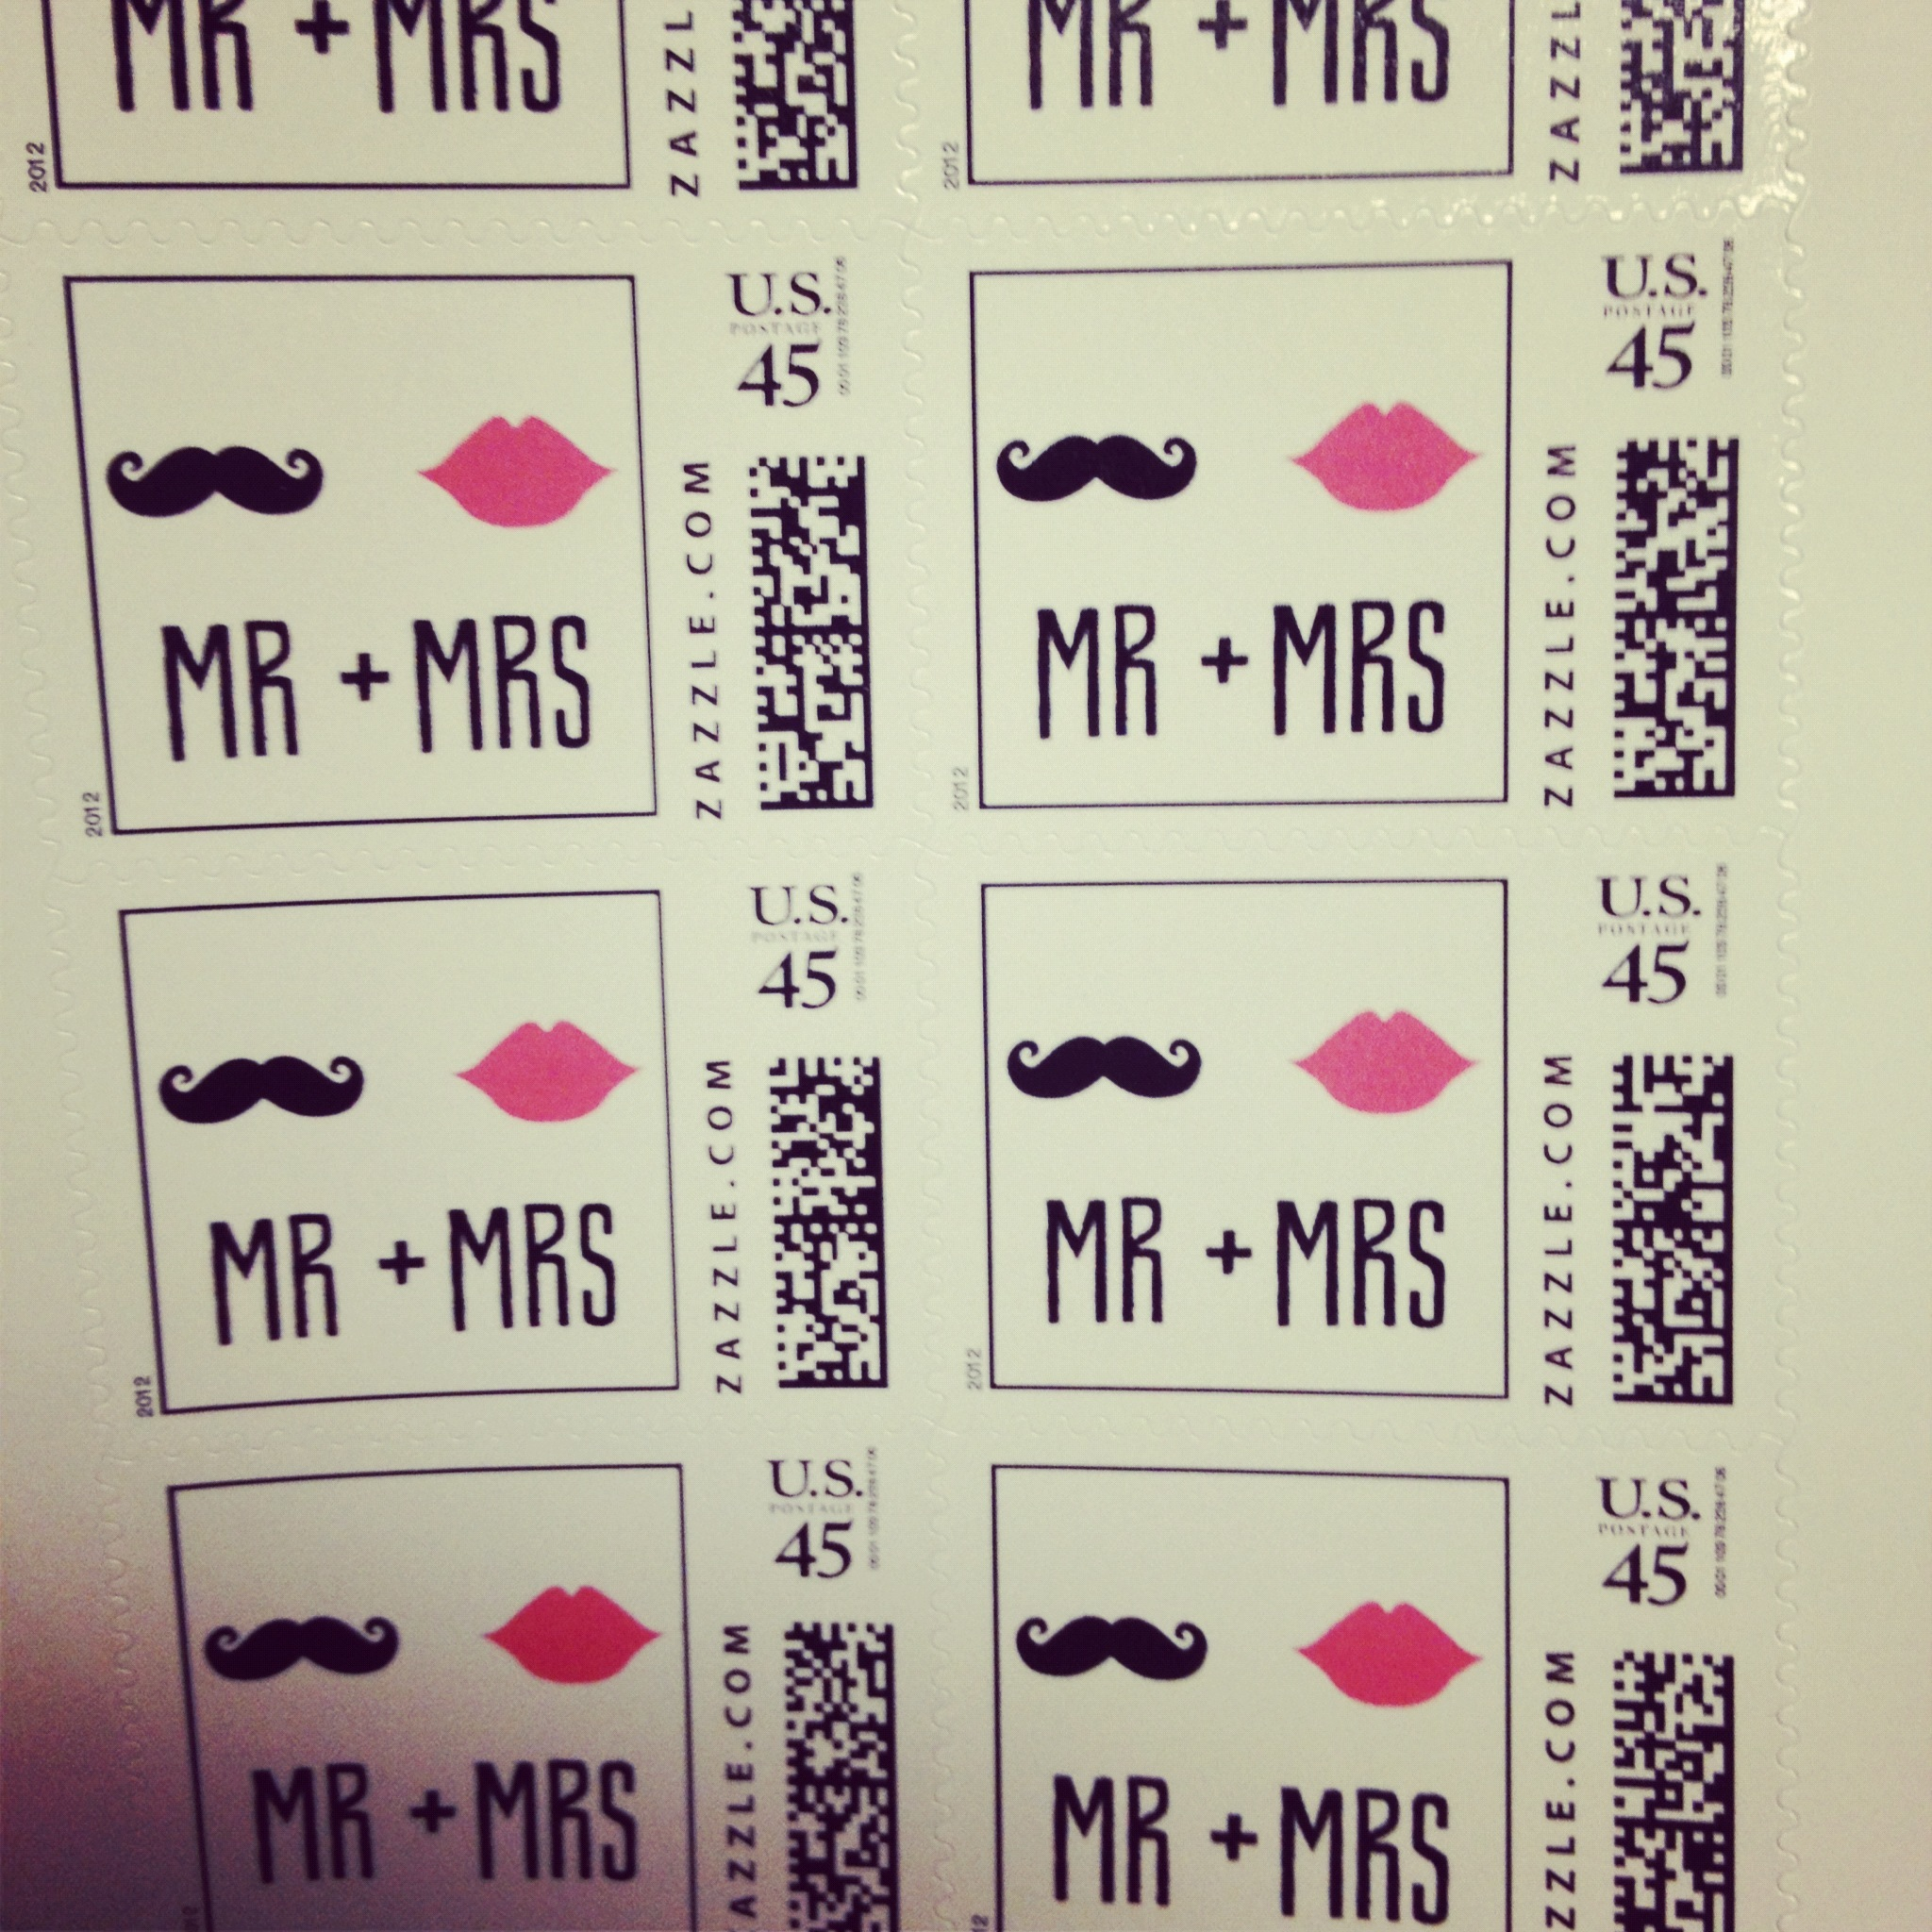 postage stamps for wedding invitations stamps for wedding invitations wedding invitations a destination bride Wedding invitations